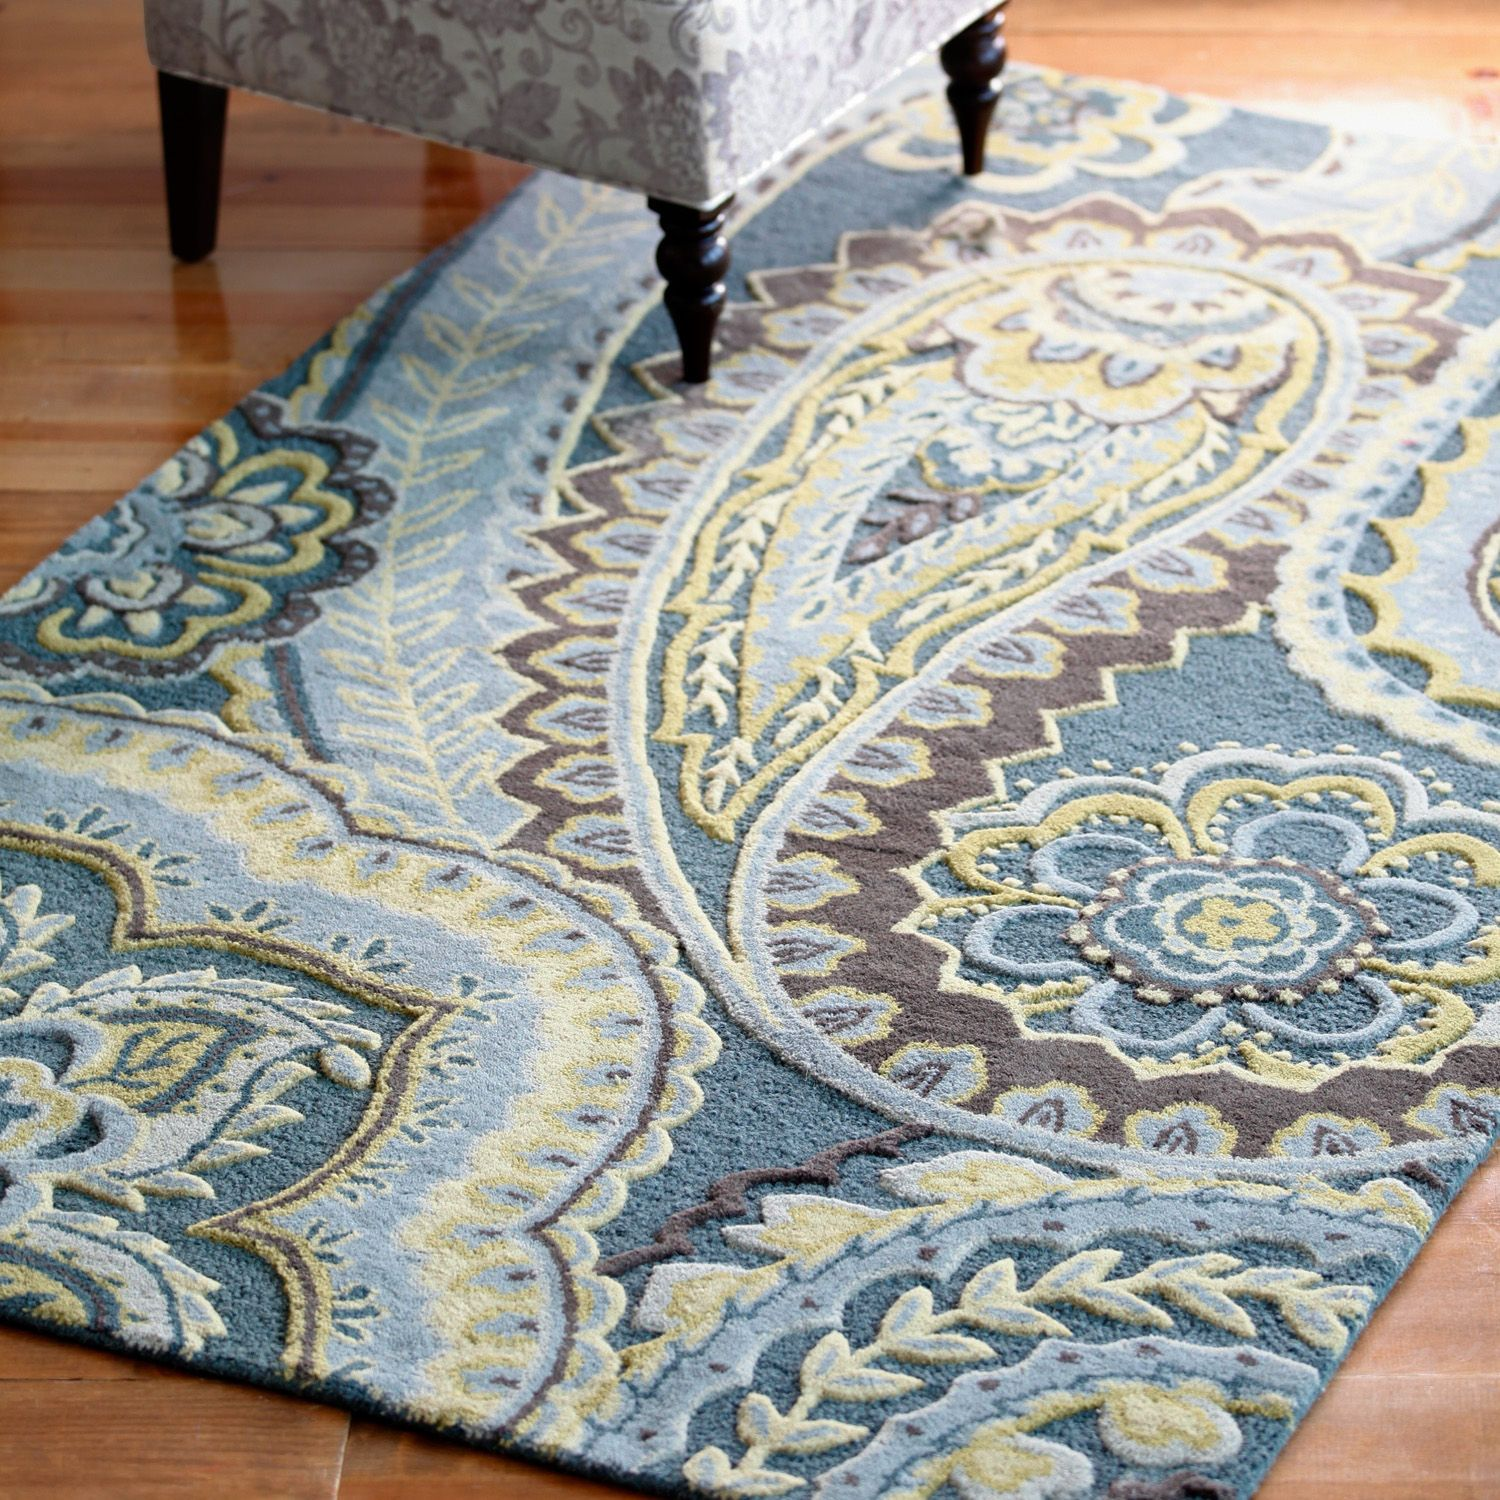 Blue Paisley Tufted Wool Rugs Paisley Rug Rugs In Living Room Tufted Rug